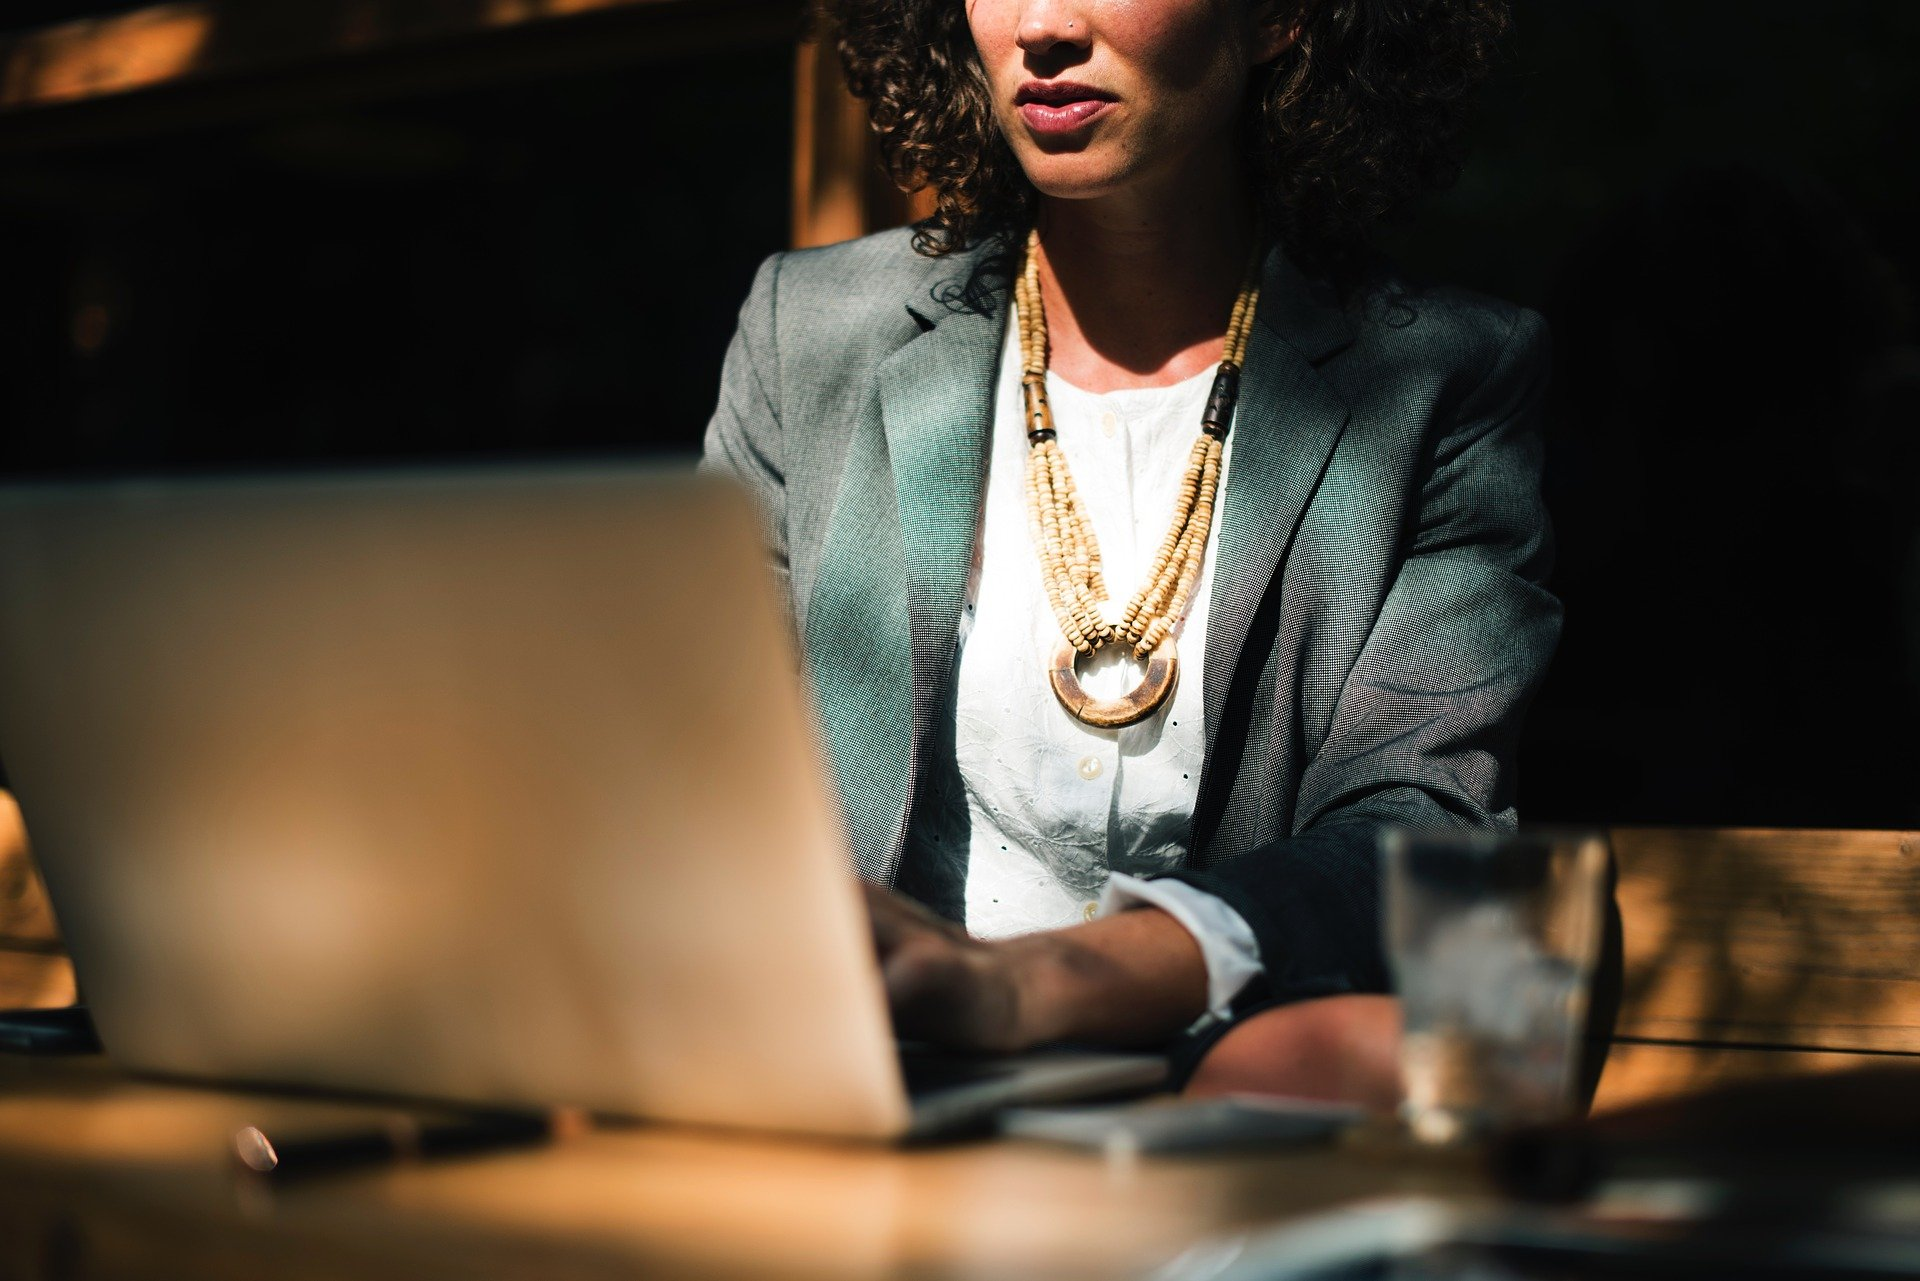 A business woman at work.   Source: Pixabay.